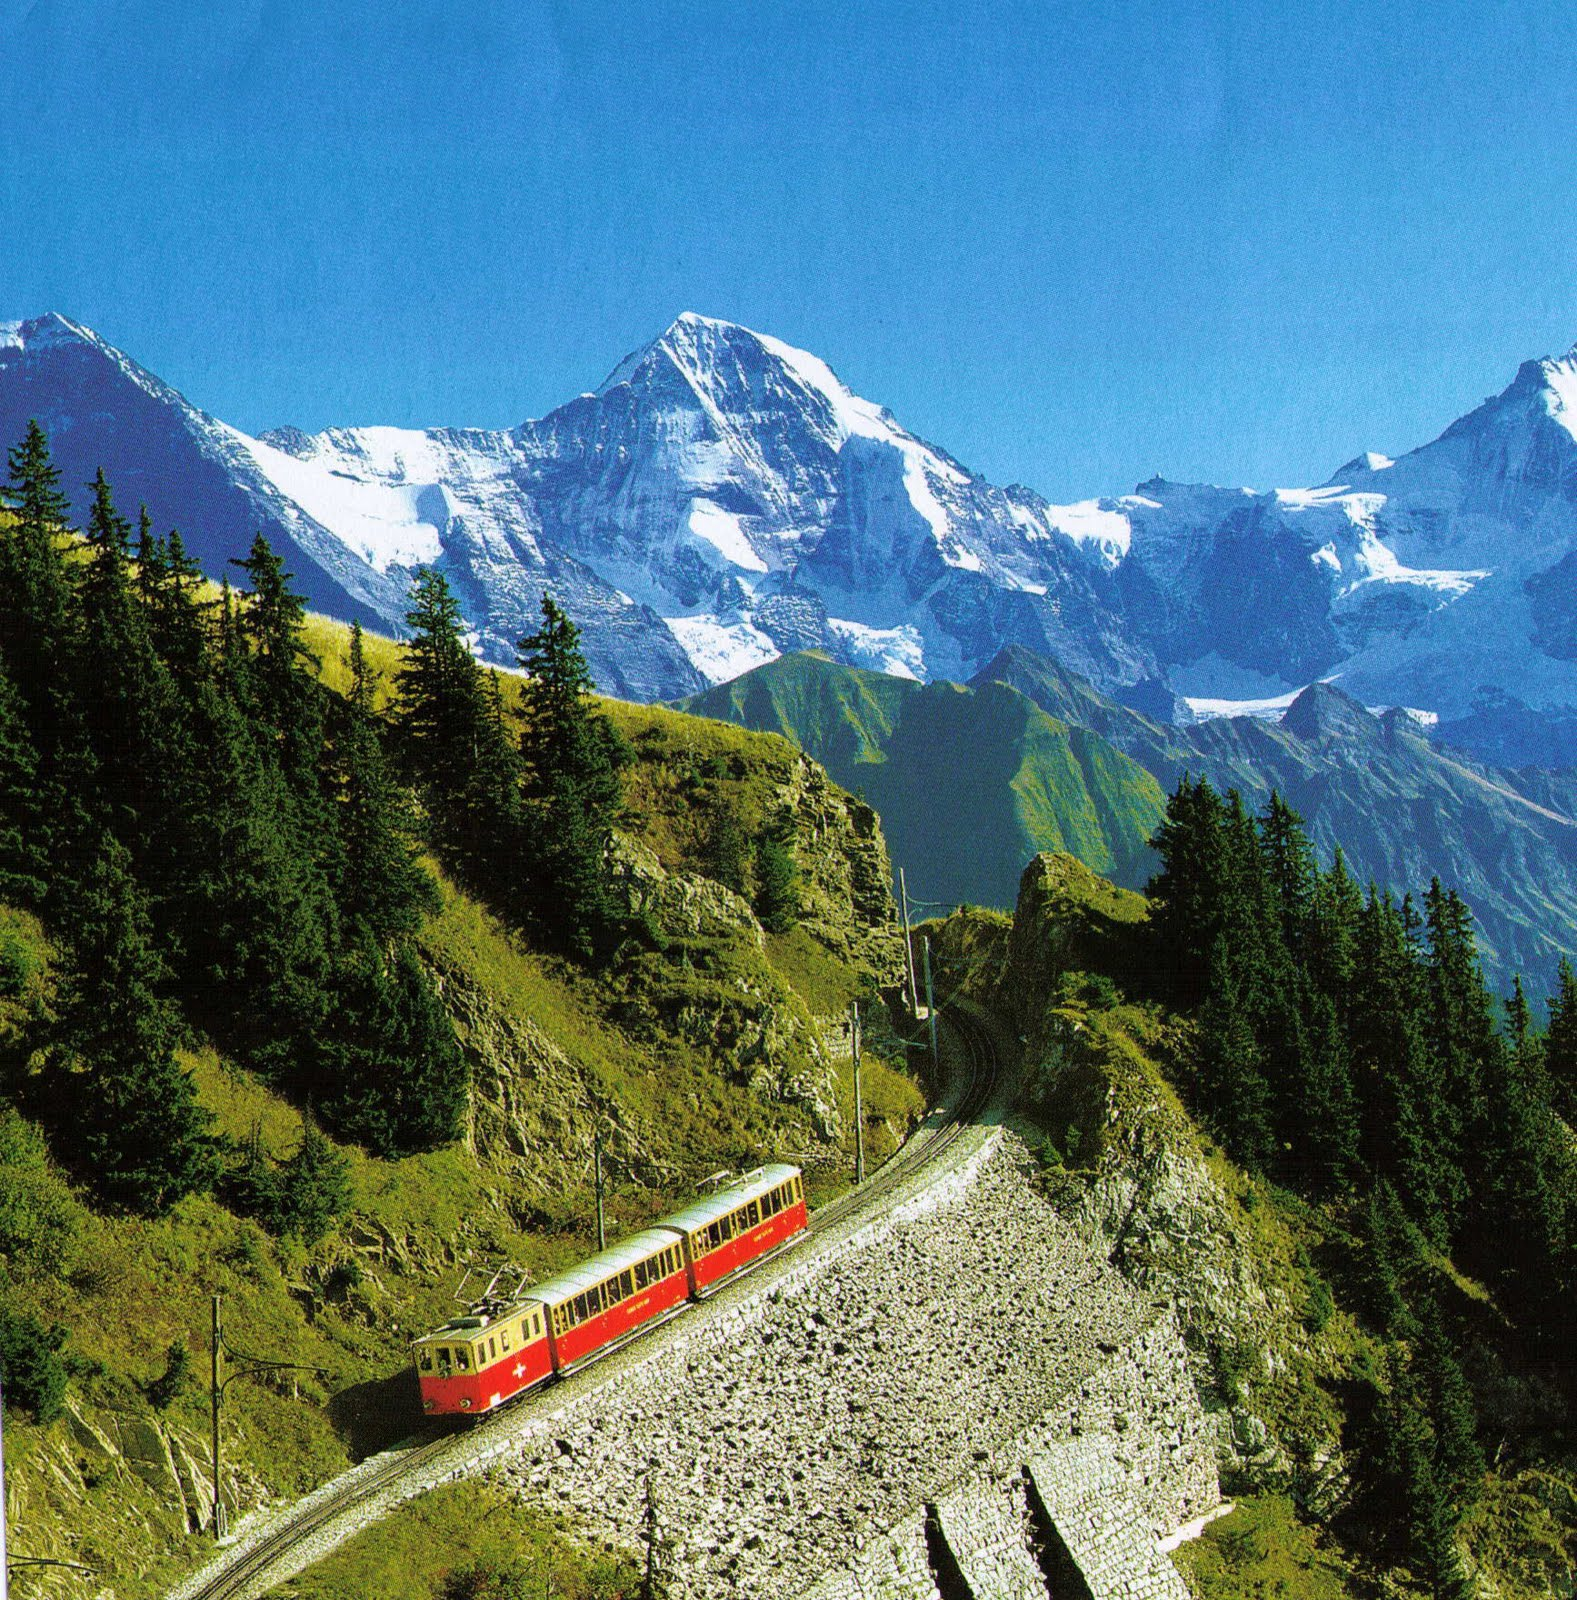 Transpress Nz: Travel By Rail In Switzerland And Europe